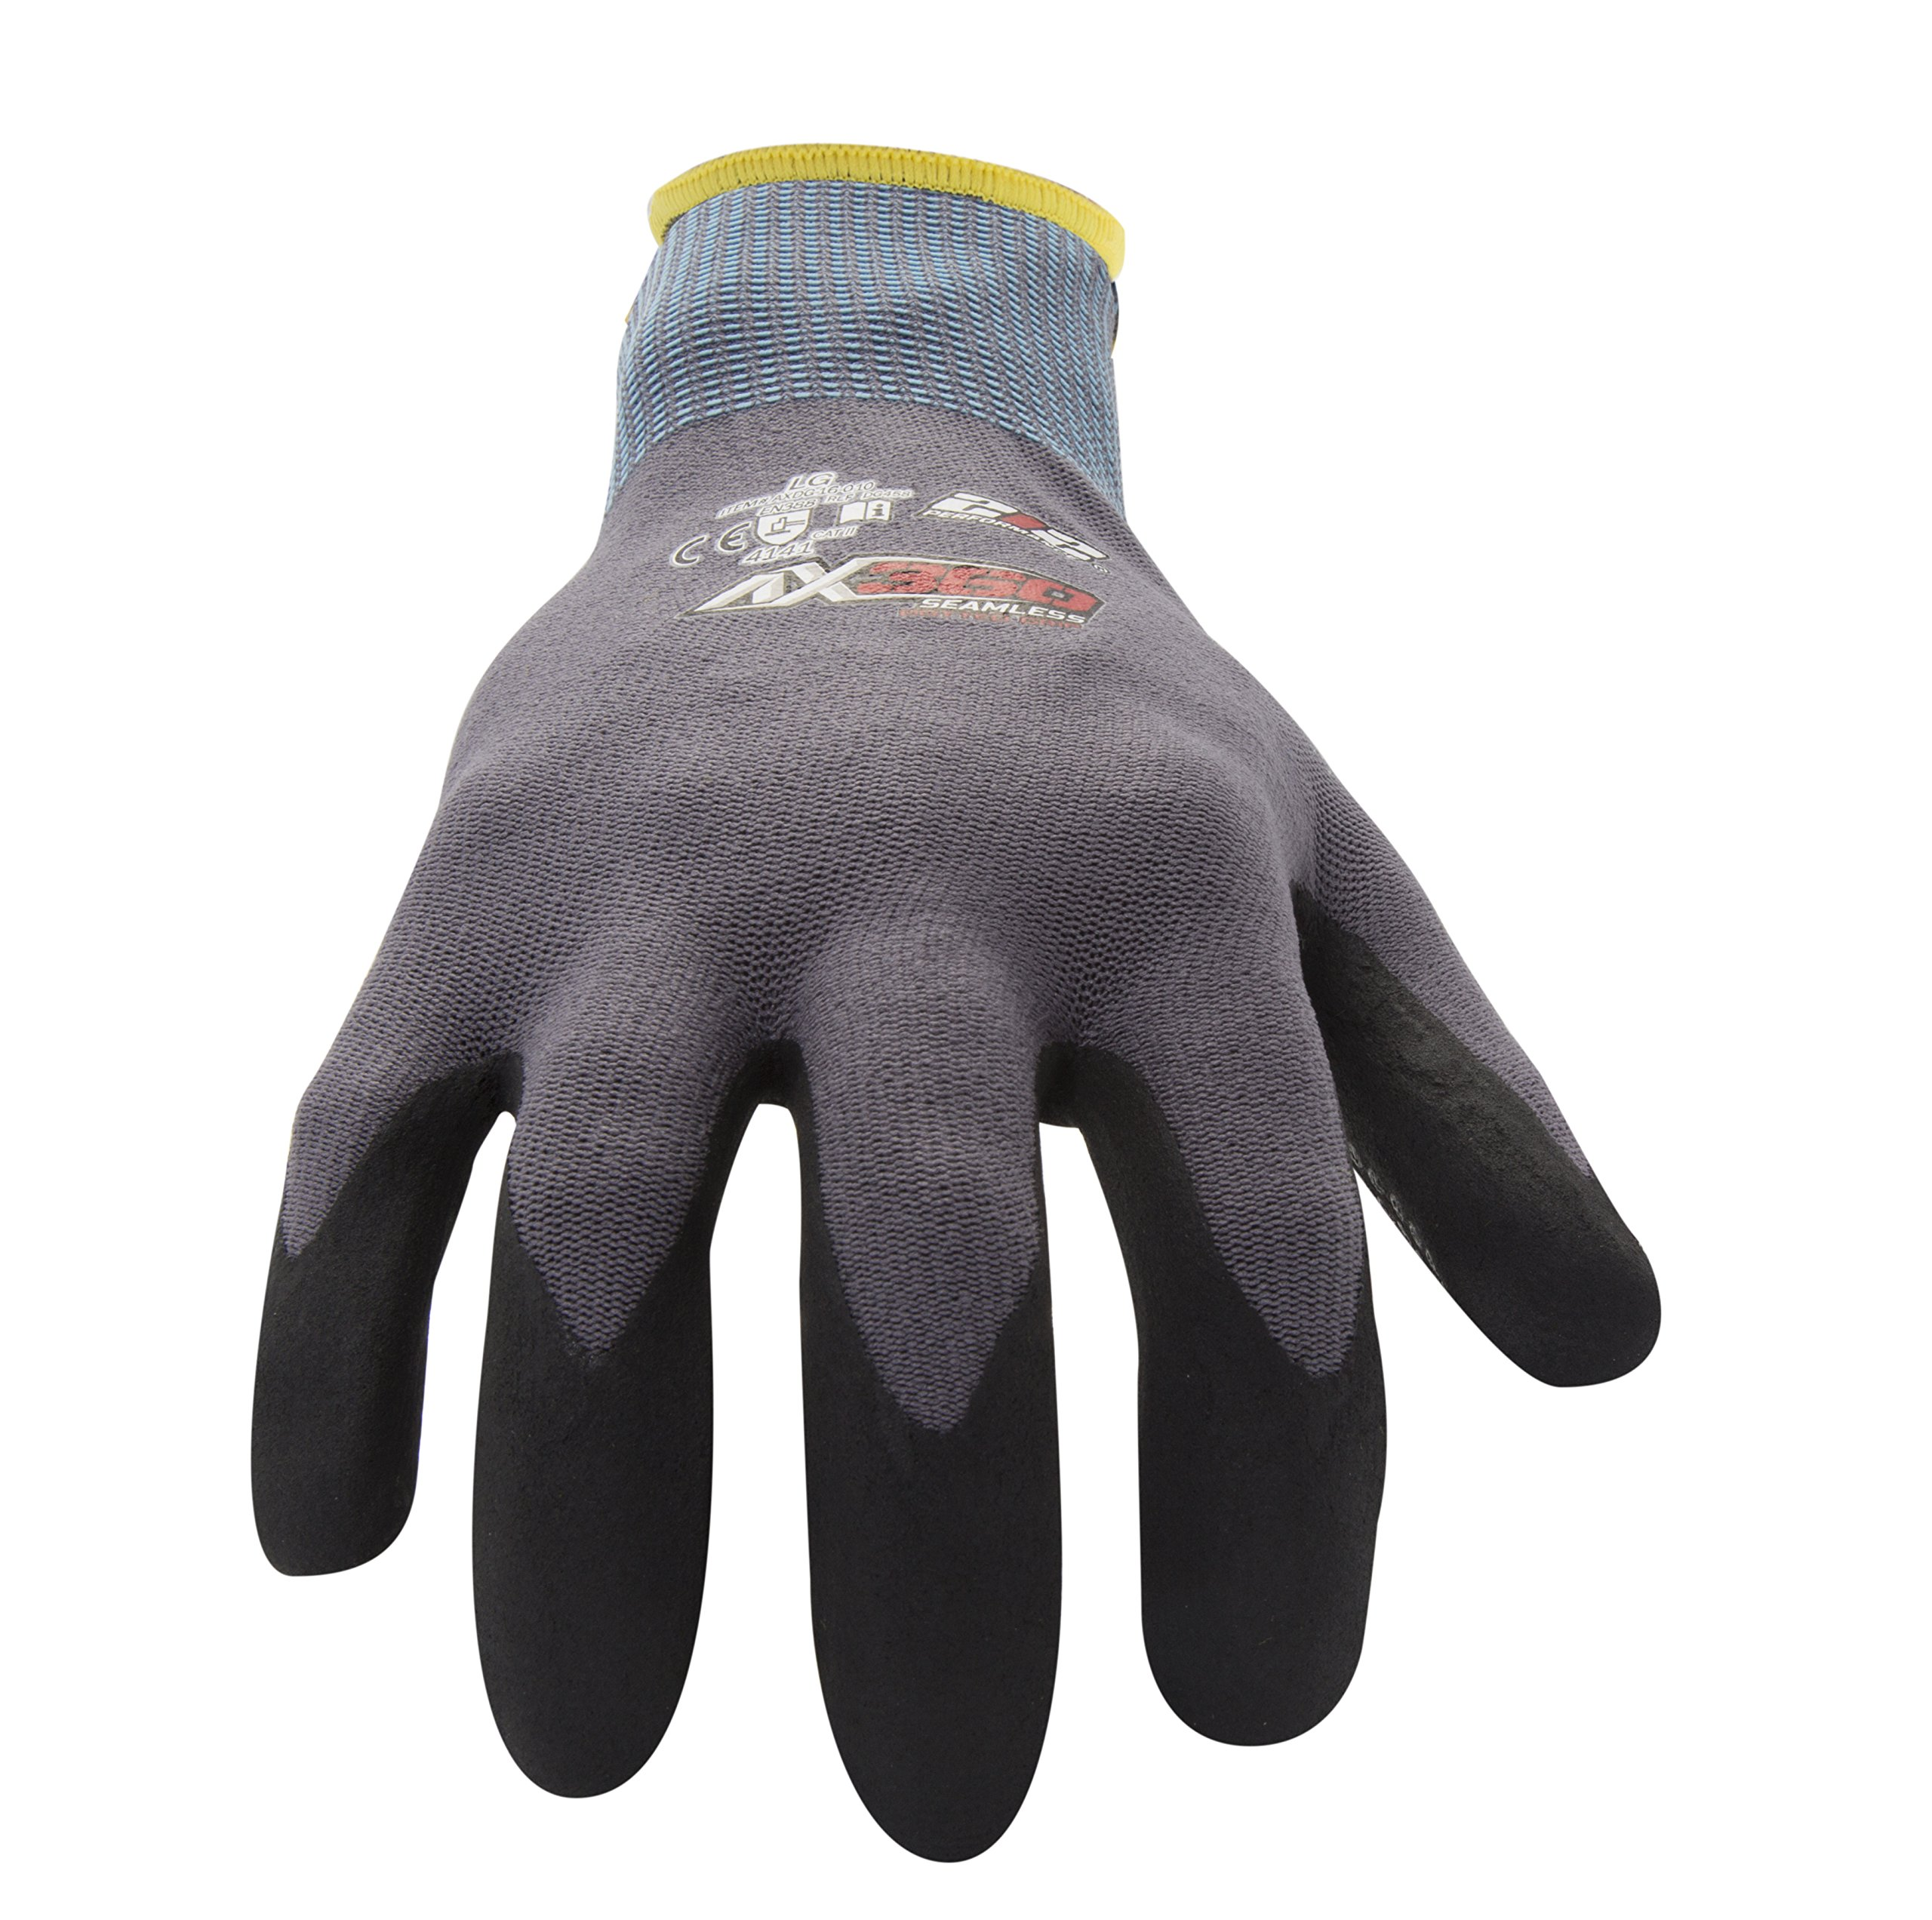 212 Performance Gloves AXDG-16-011 AX360 Dotted Grip Nitrile-dipped Work Glove, 12-Pair Bulk Pack, X-Large by 215 Performance Gloves (Image #2)